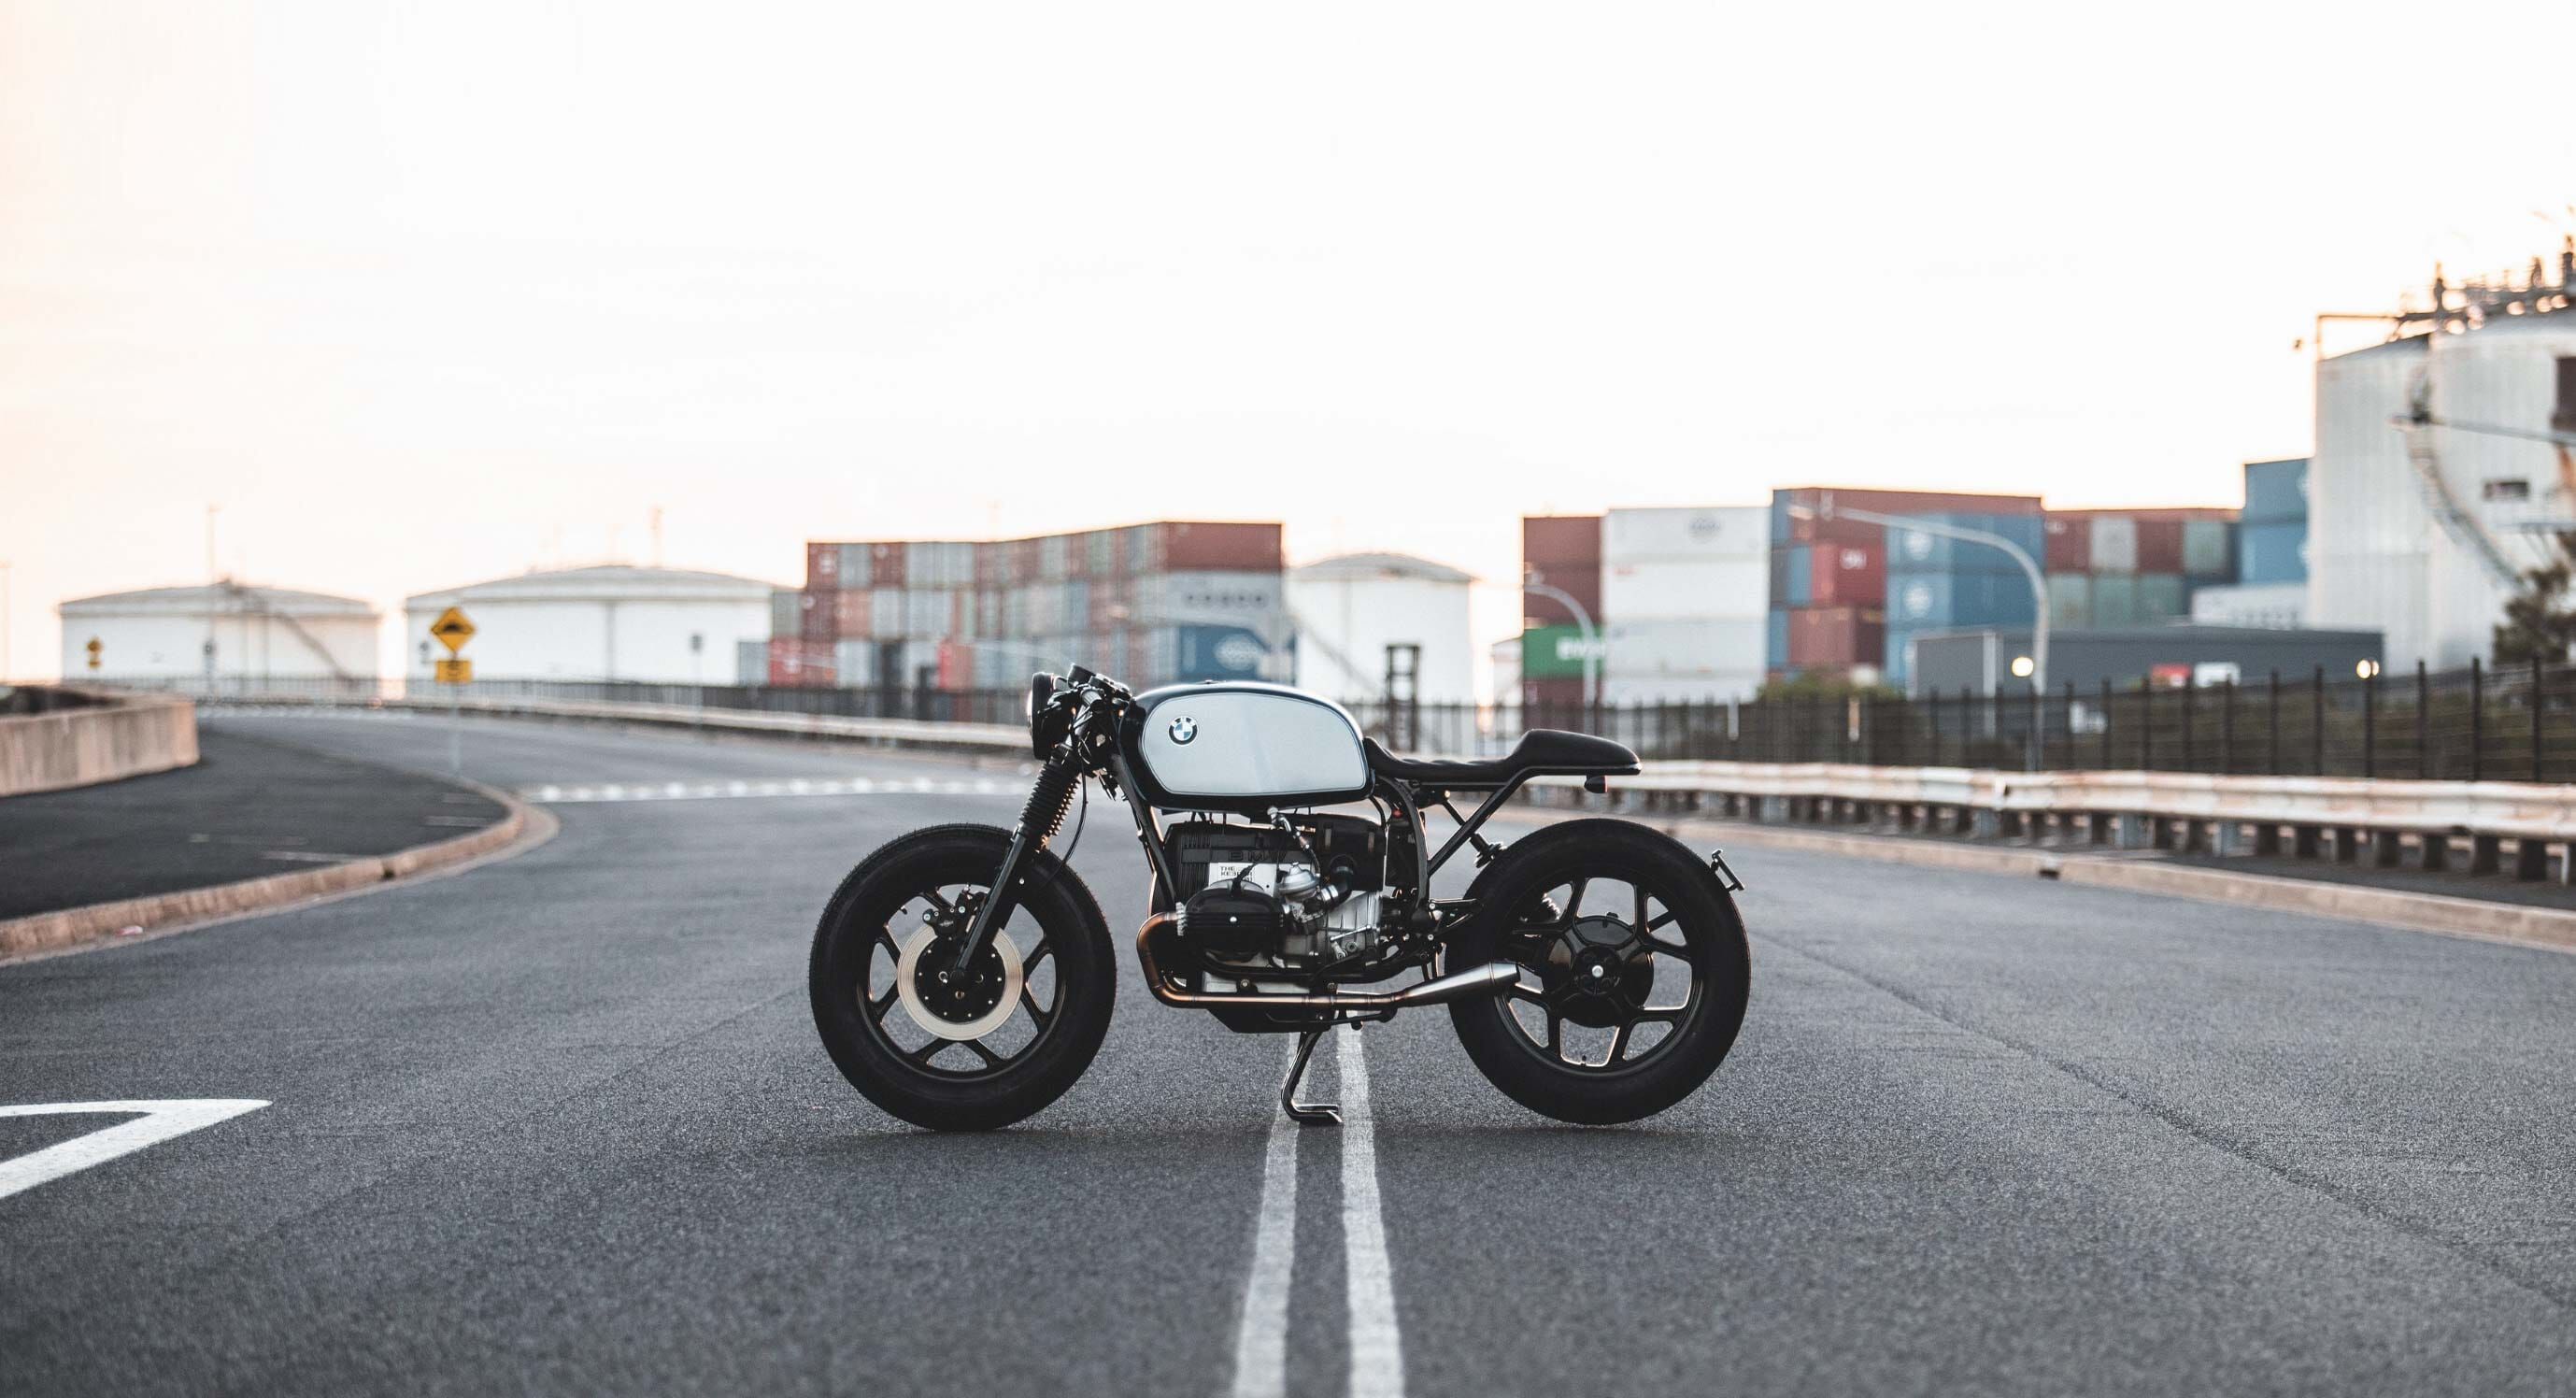 Gasoline Motor Co. Unveils 'The Keeper' BMW R65